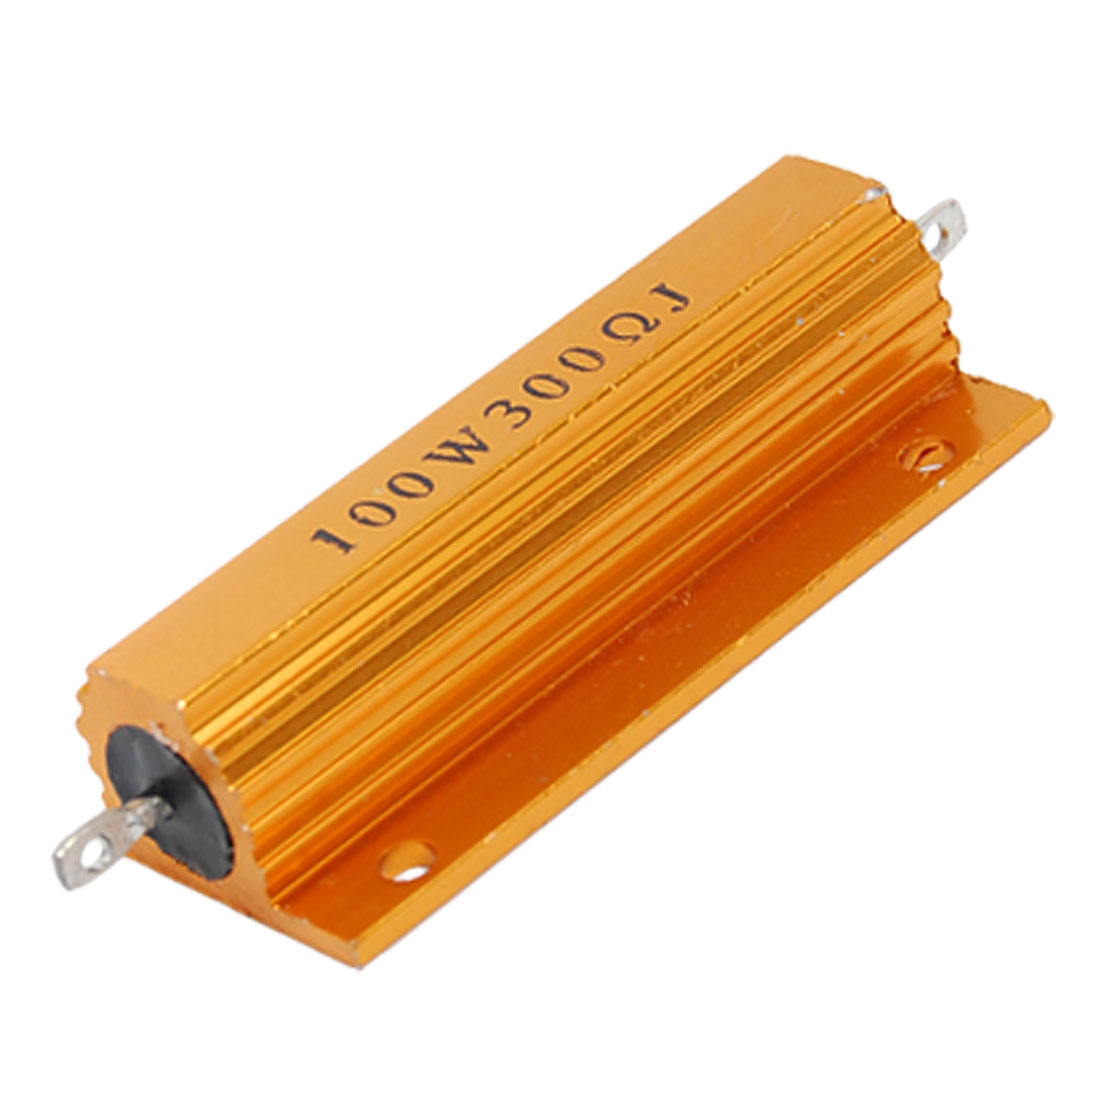 100W 300Ohm 5% Chasis Mounted Aluminum Housed Wirewound Resistor